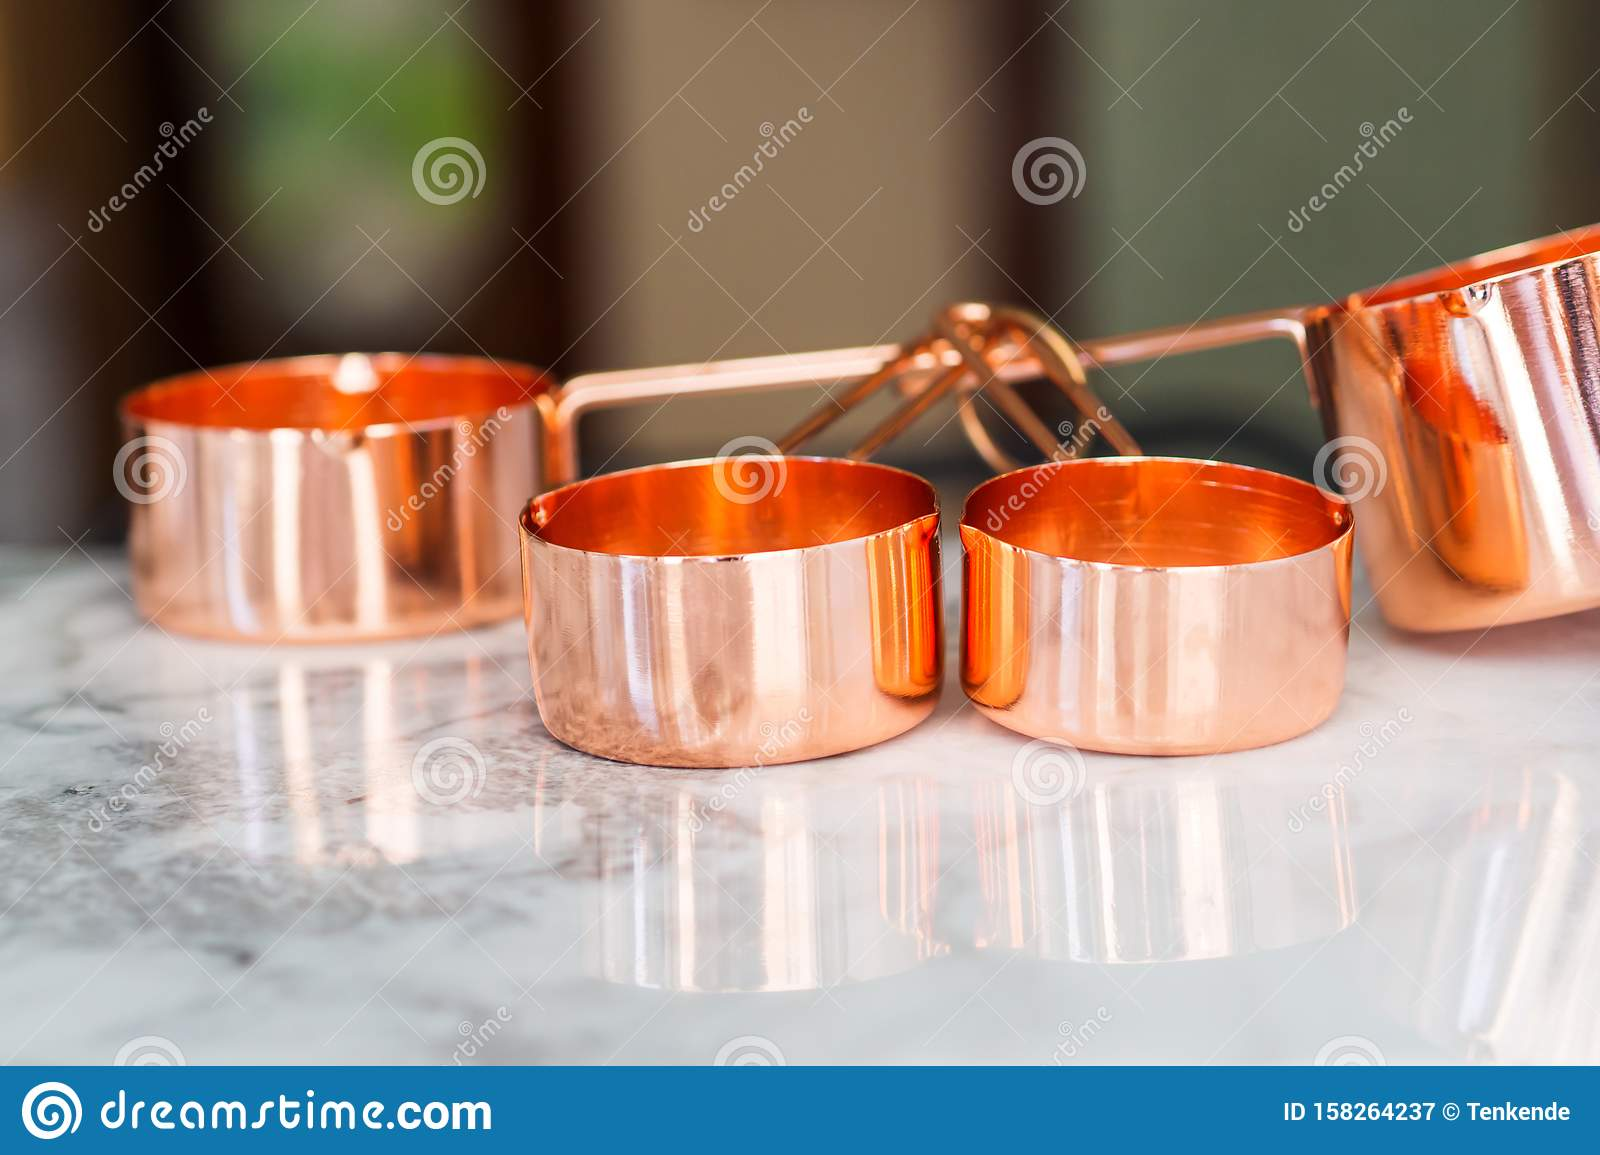 Copper Cups On Marble Ready To Cook Stock Image Image Of Concept Weigh 158264237